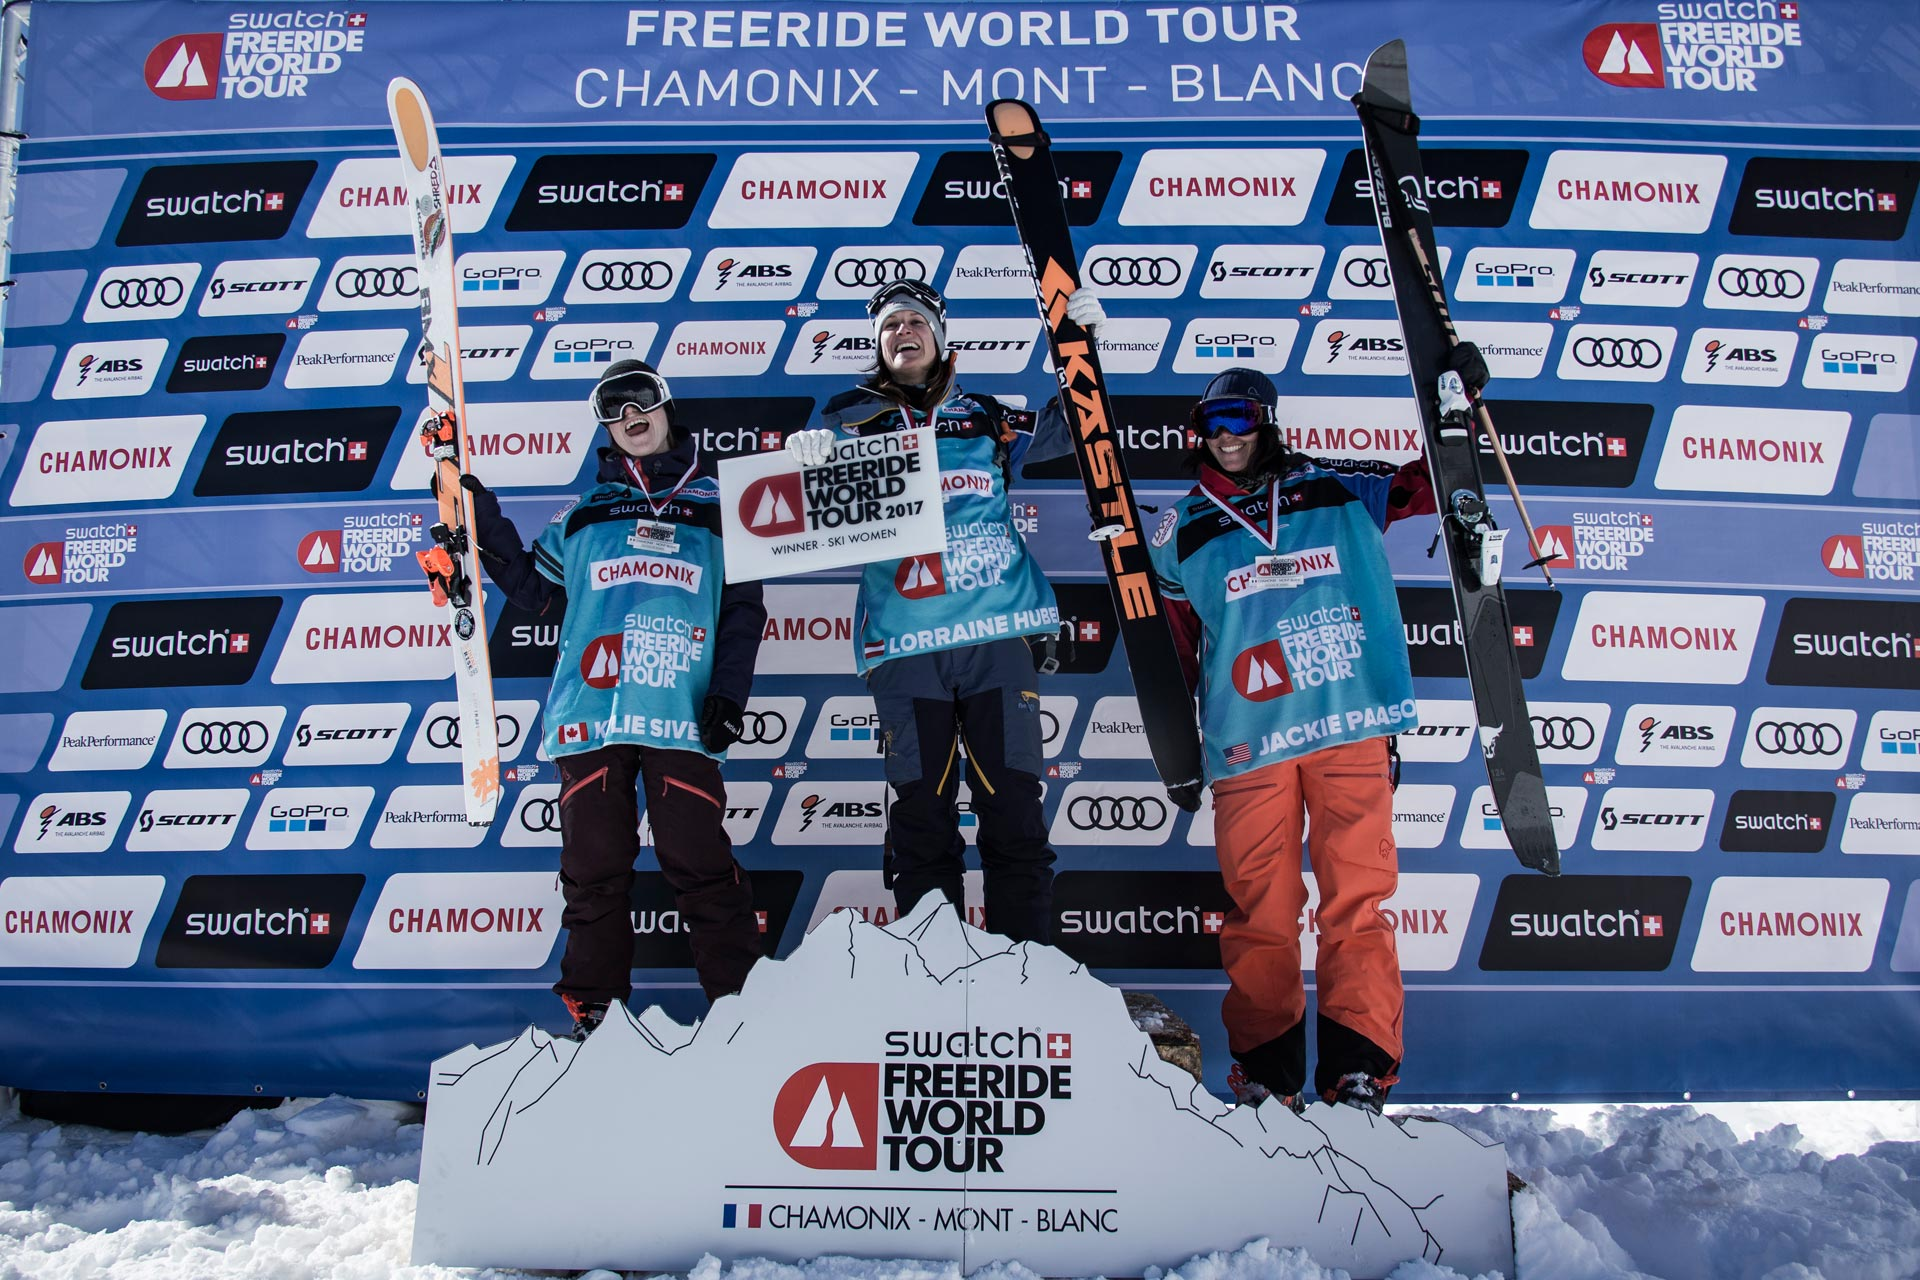 Die Top 3 Ladies in Andorra (Nachholcontest aus Chamonix): Kylie Sivell (CAN), Lorraine Huber (AUT) und Jaclyn Paaso USA) - Foto: freerideworldtour.com / D. Daher